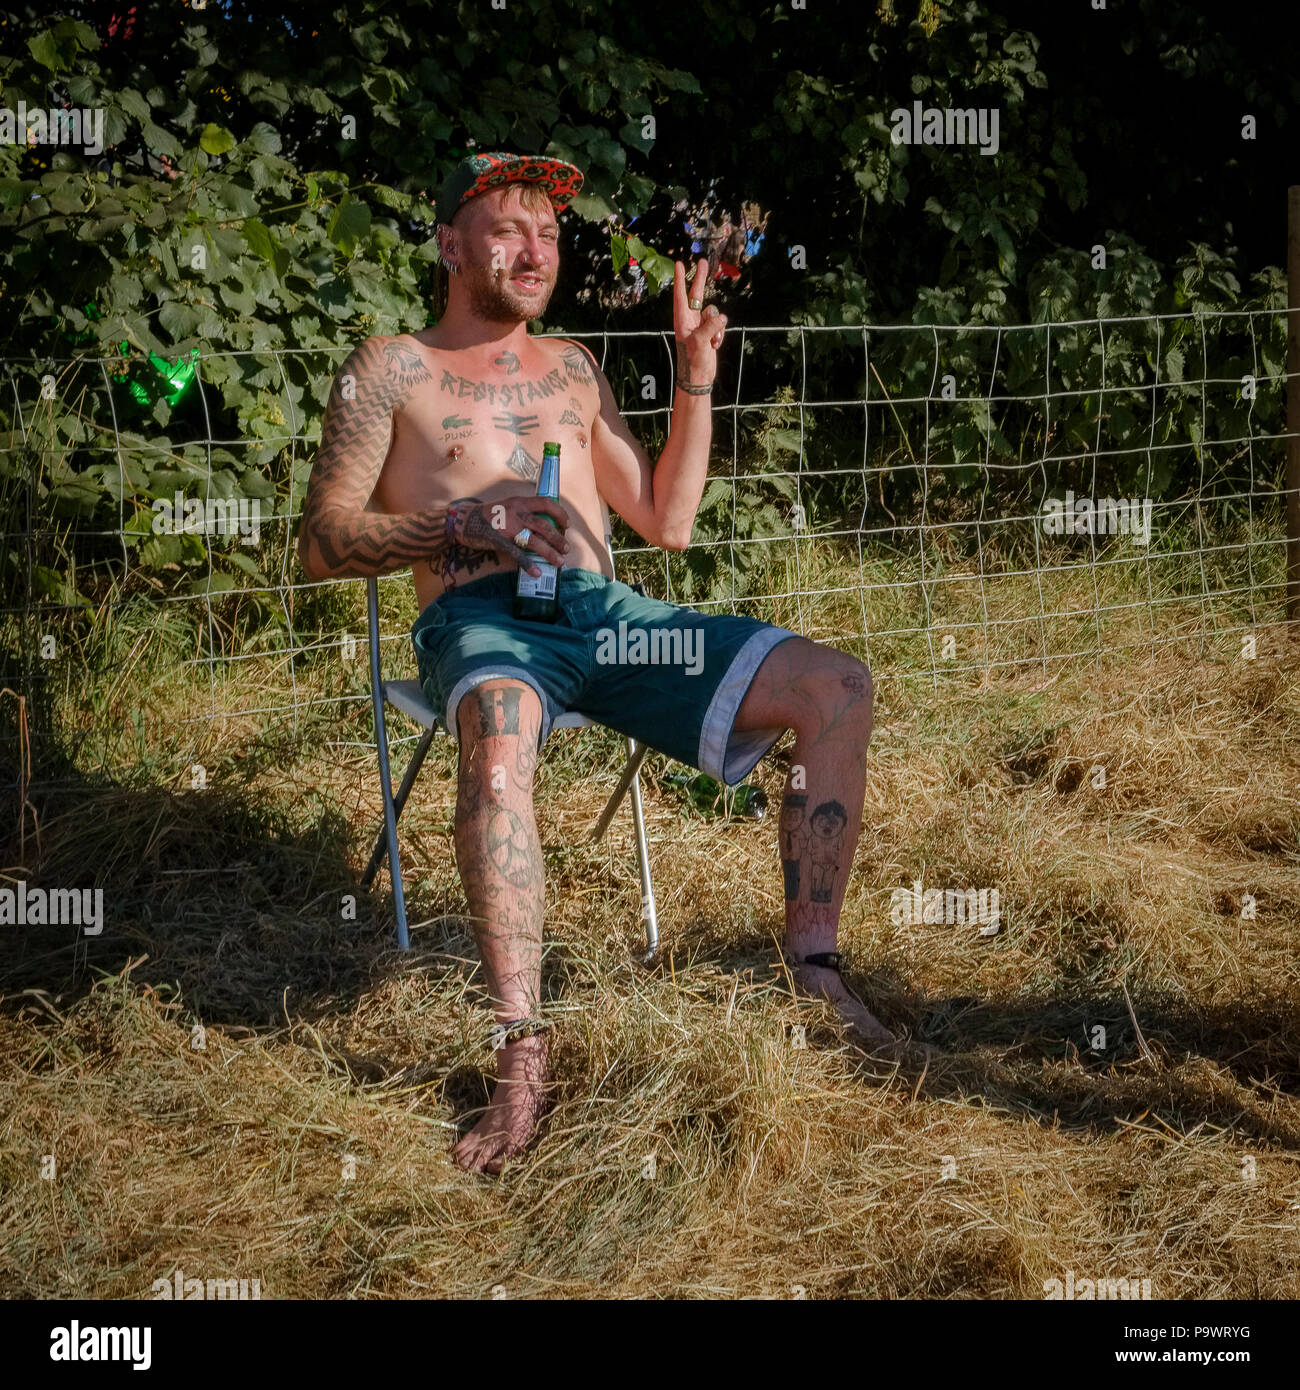 Young man with tattoos and piercings grins and makes the peace sign while drinking from plasticbottle of beer, Latitude Festival, Suffolk, UK. - Stock Image